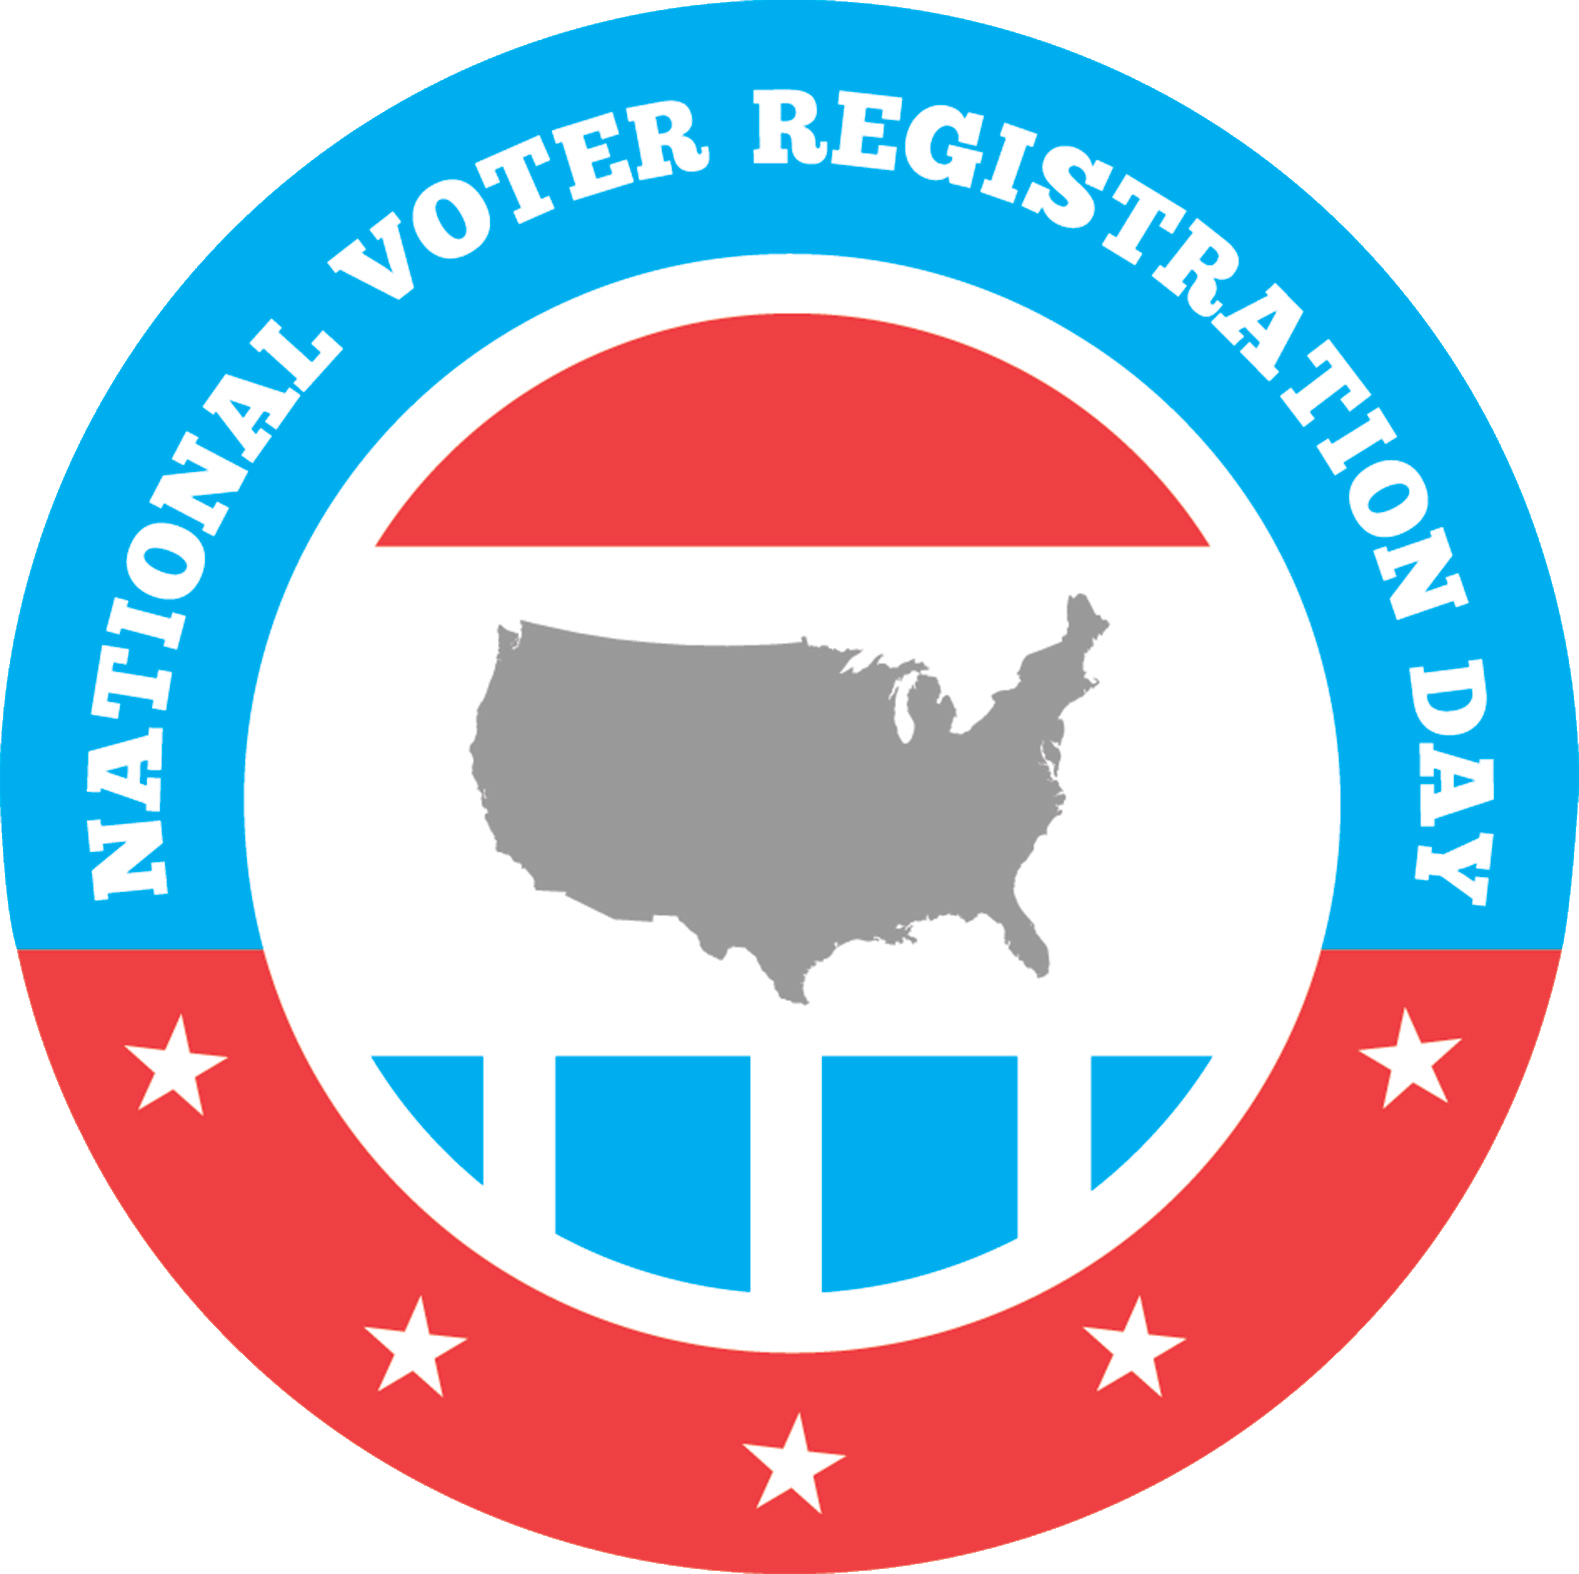 image for national voter registration day